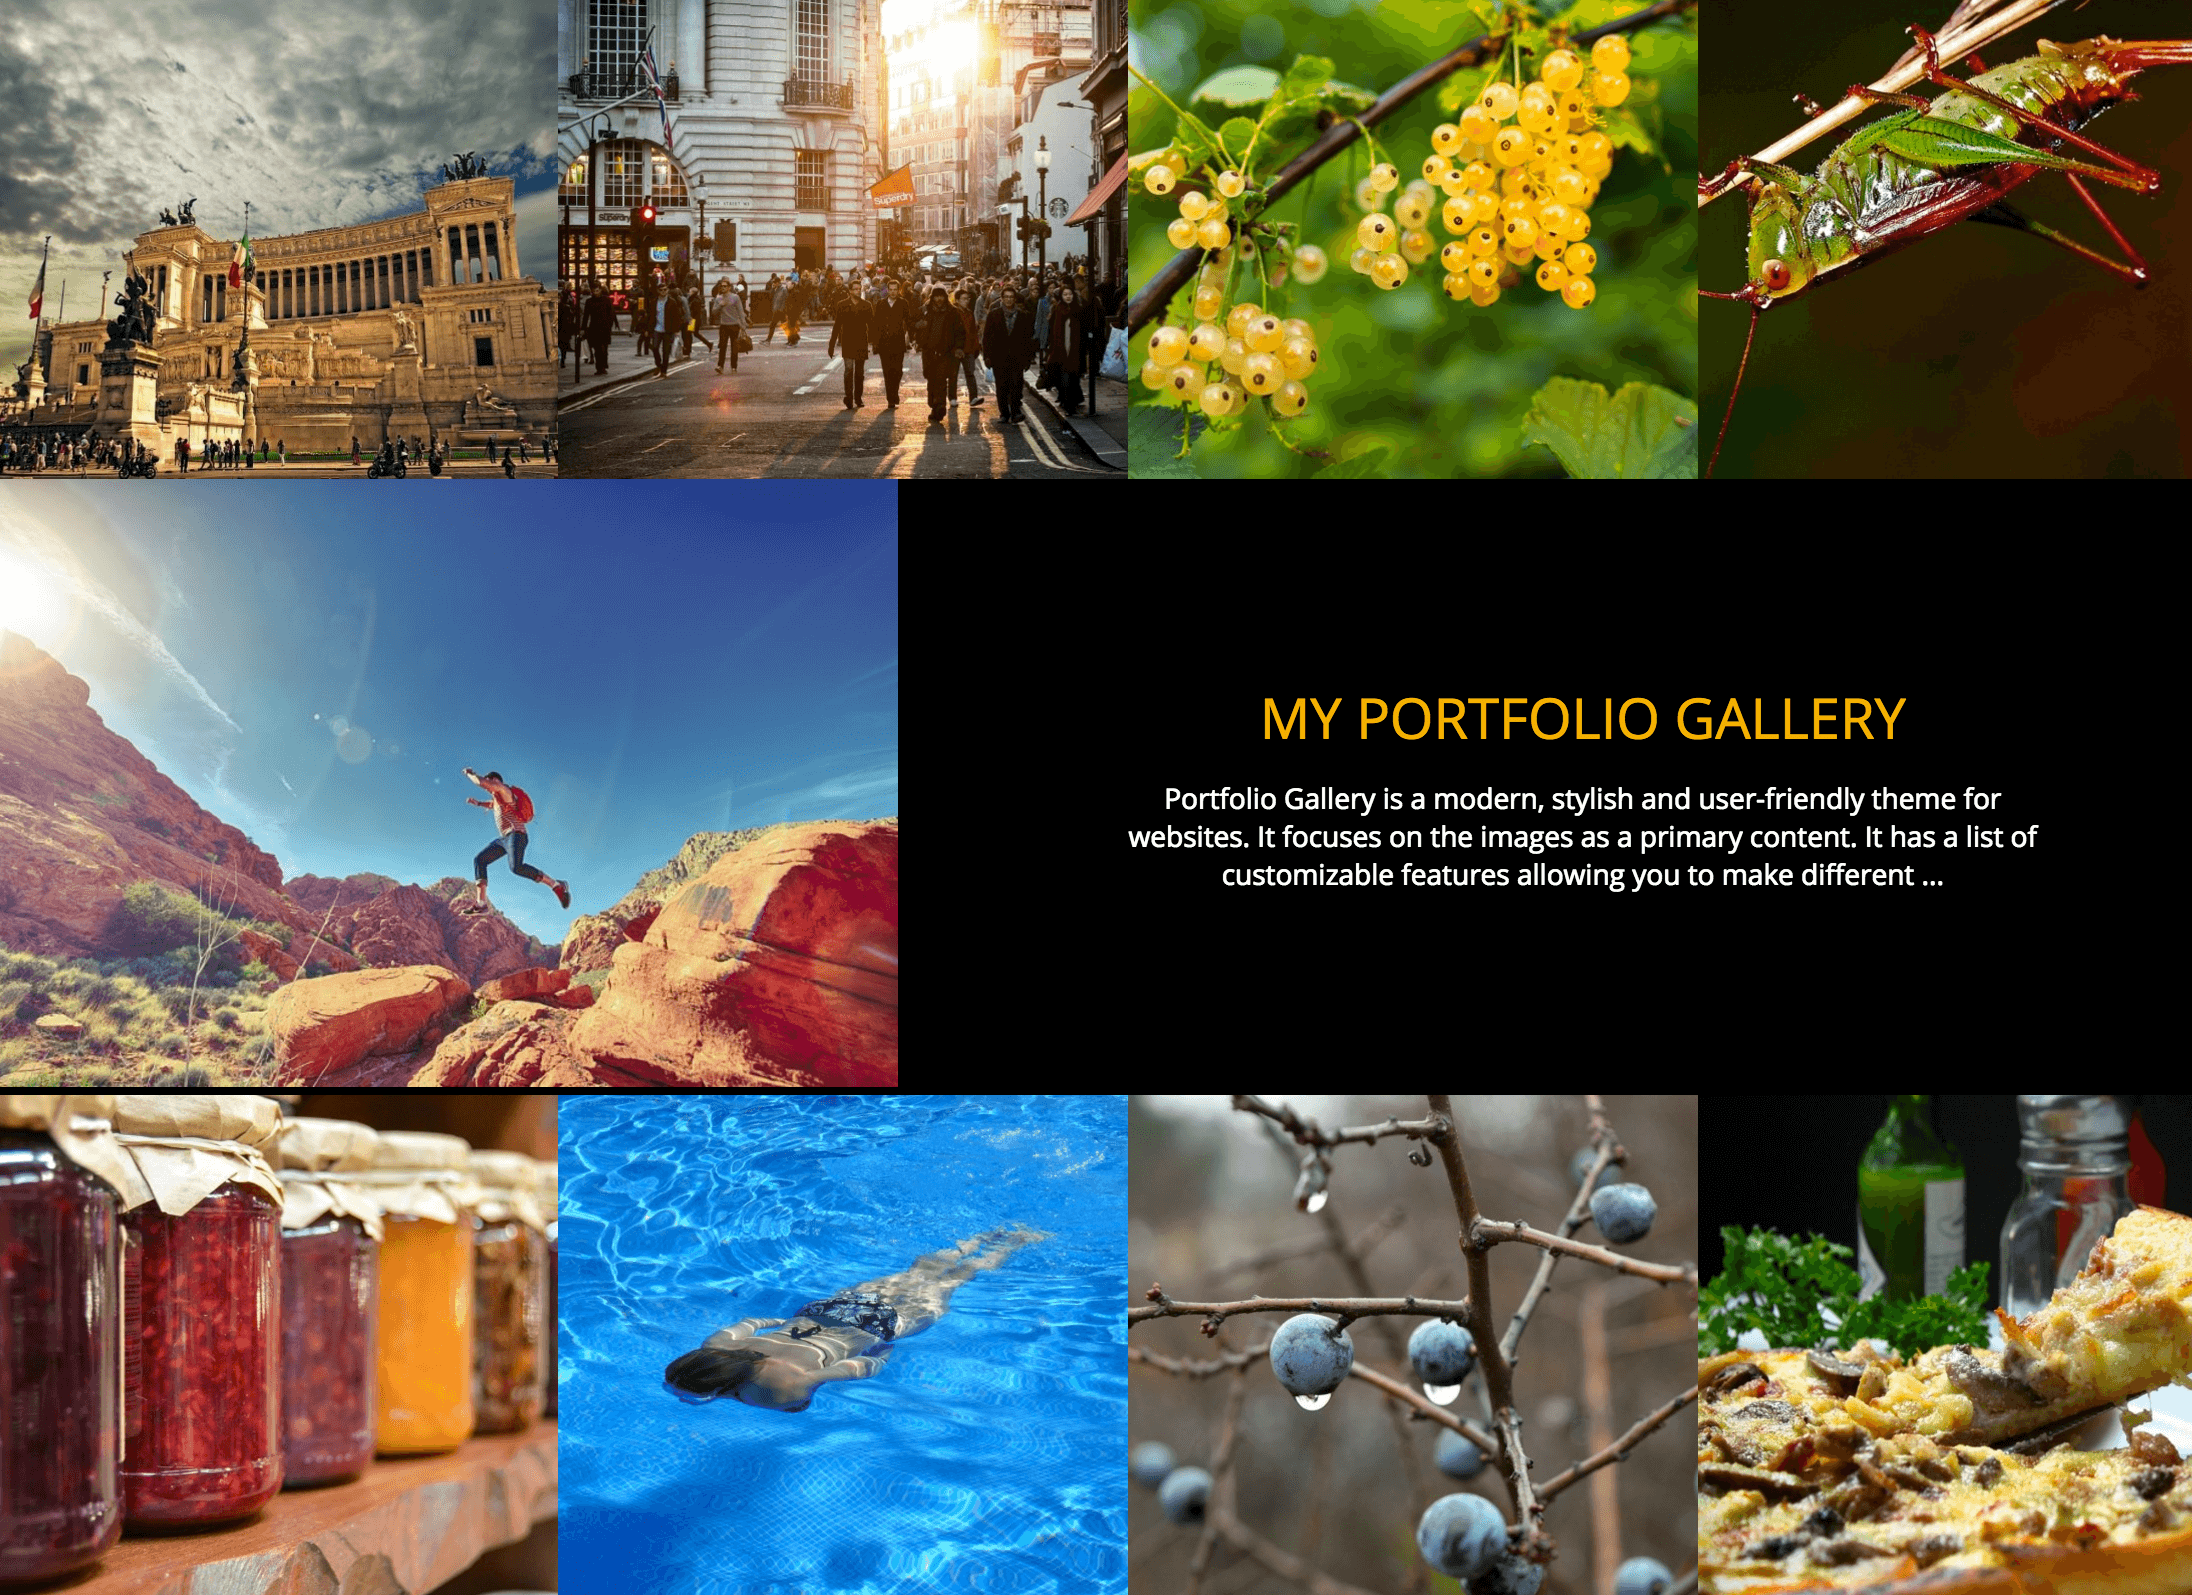 The Portfolio Gallery theme.